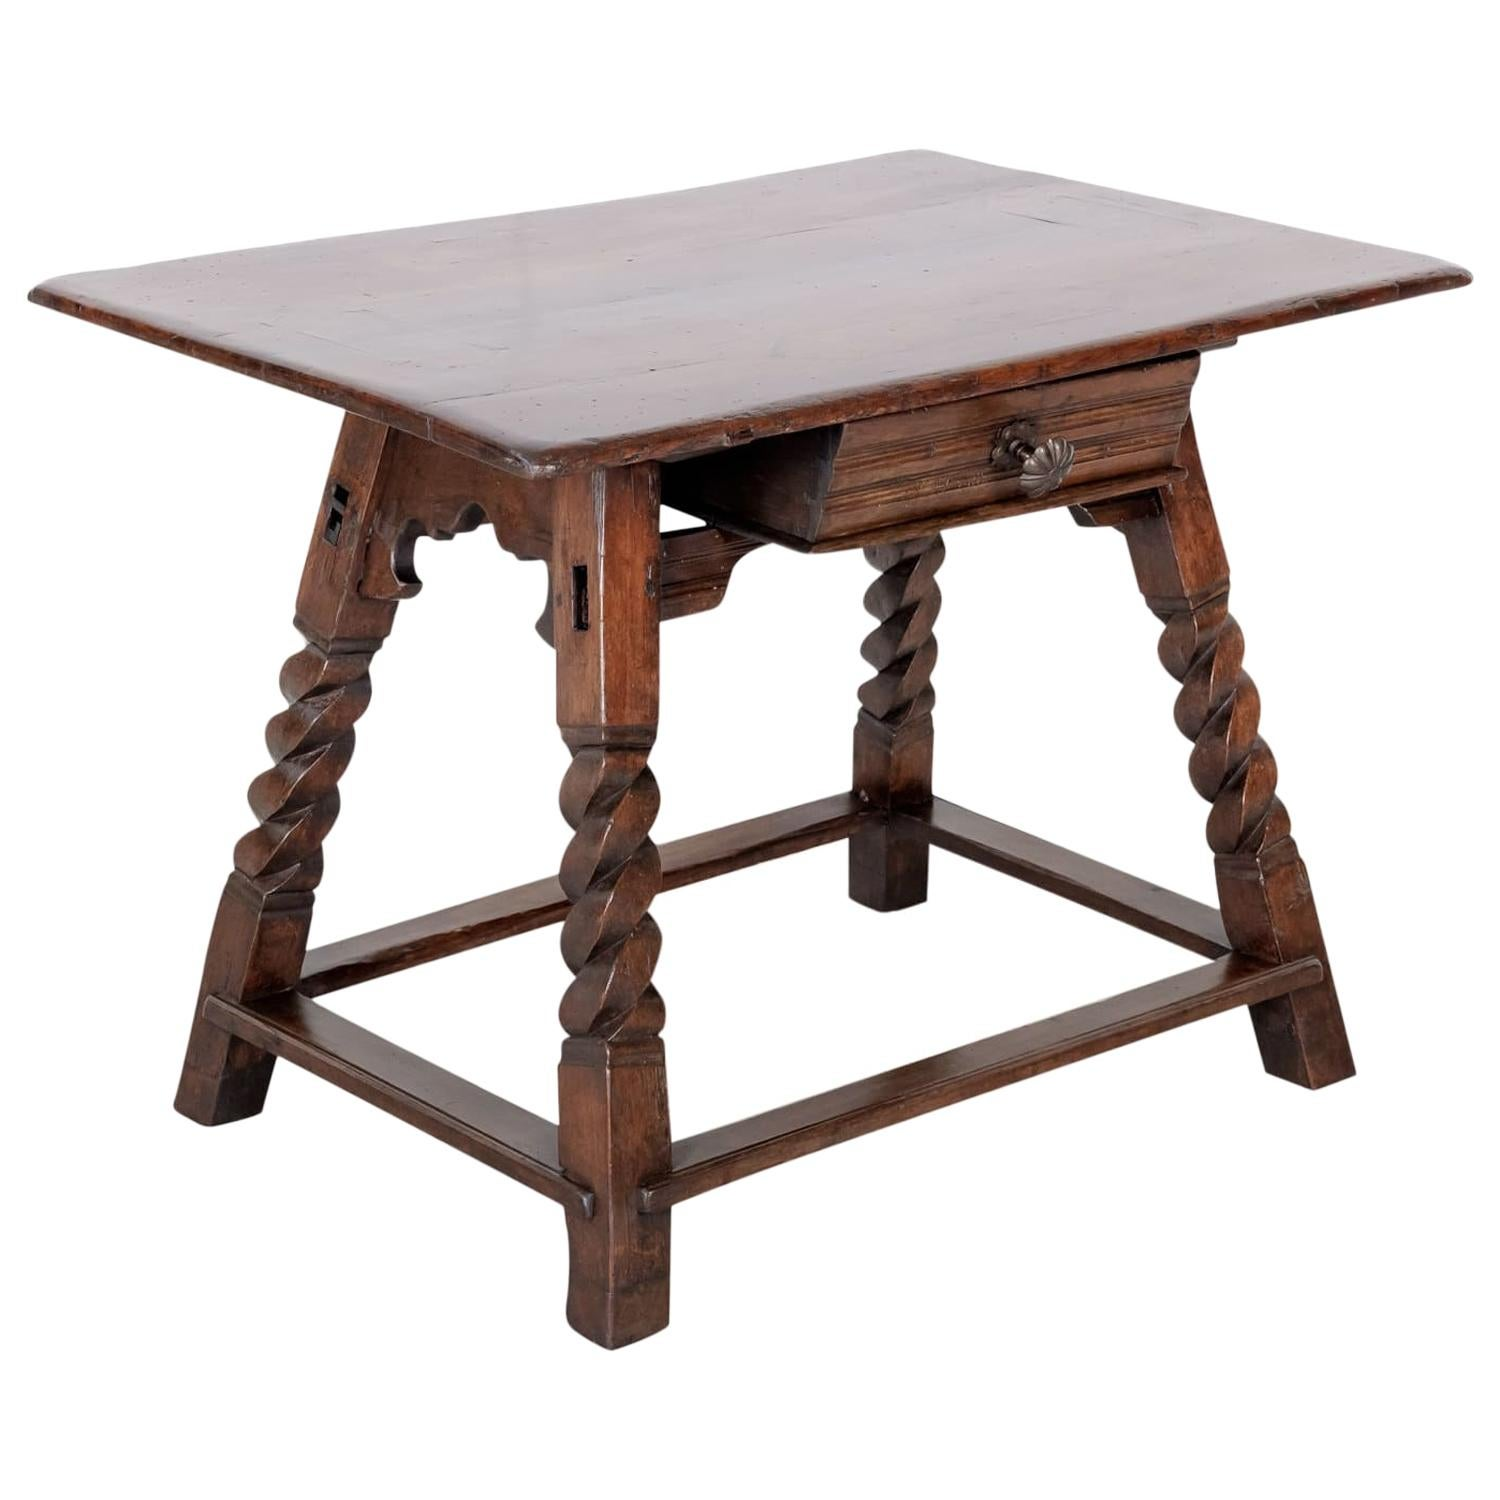 Rustic 18th Century Spanish Baroque Period Side Table